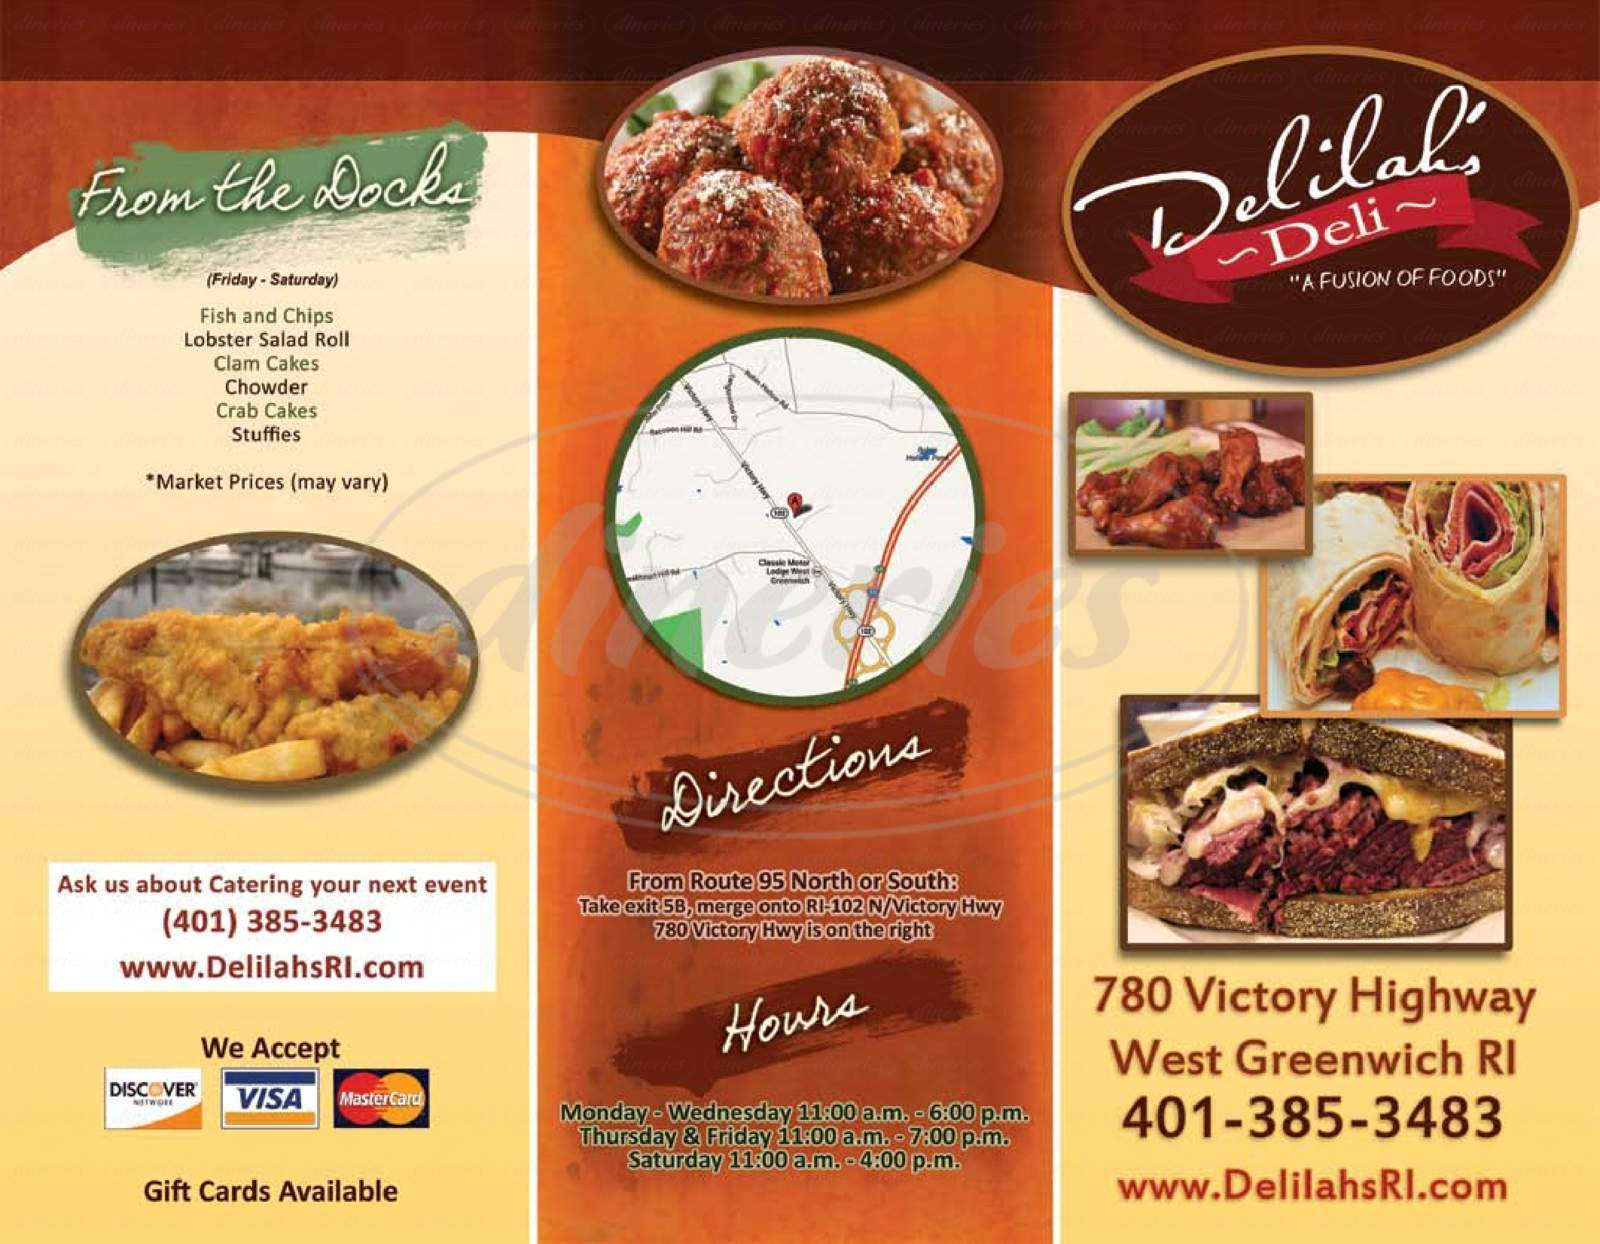 menu for Delilah's Deli